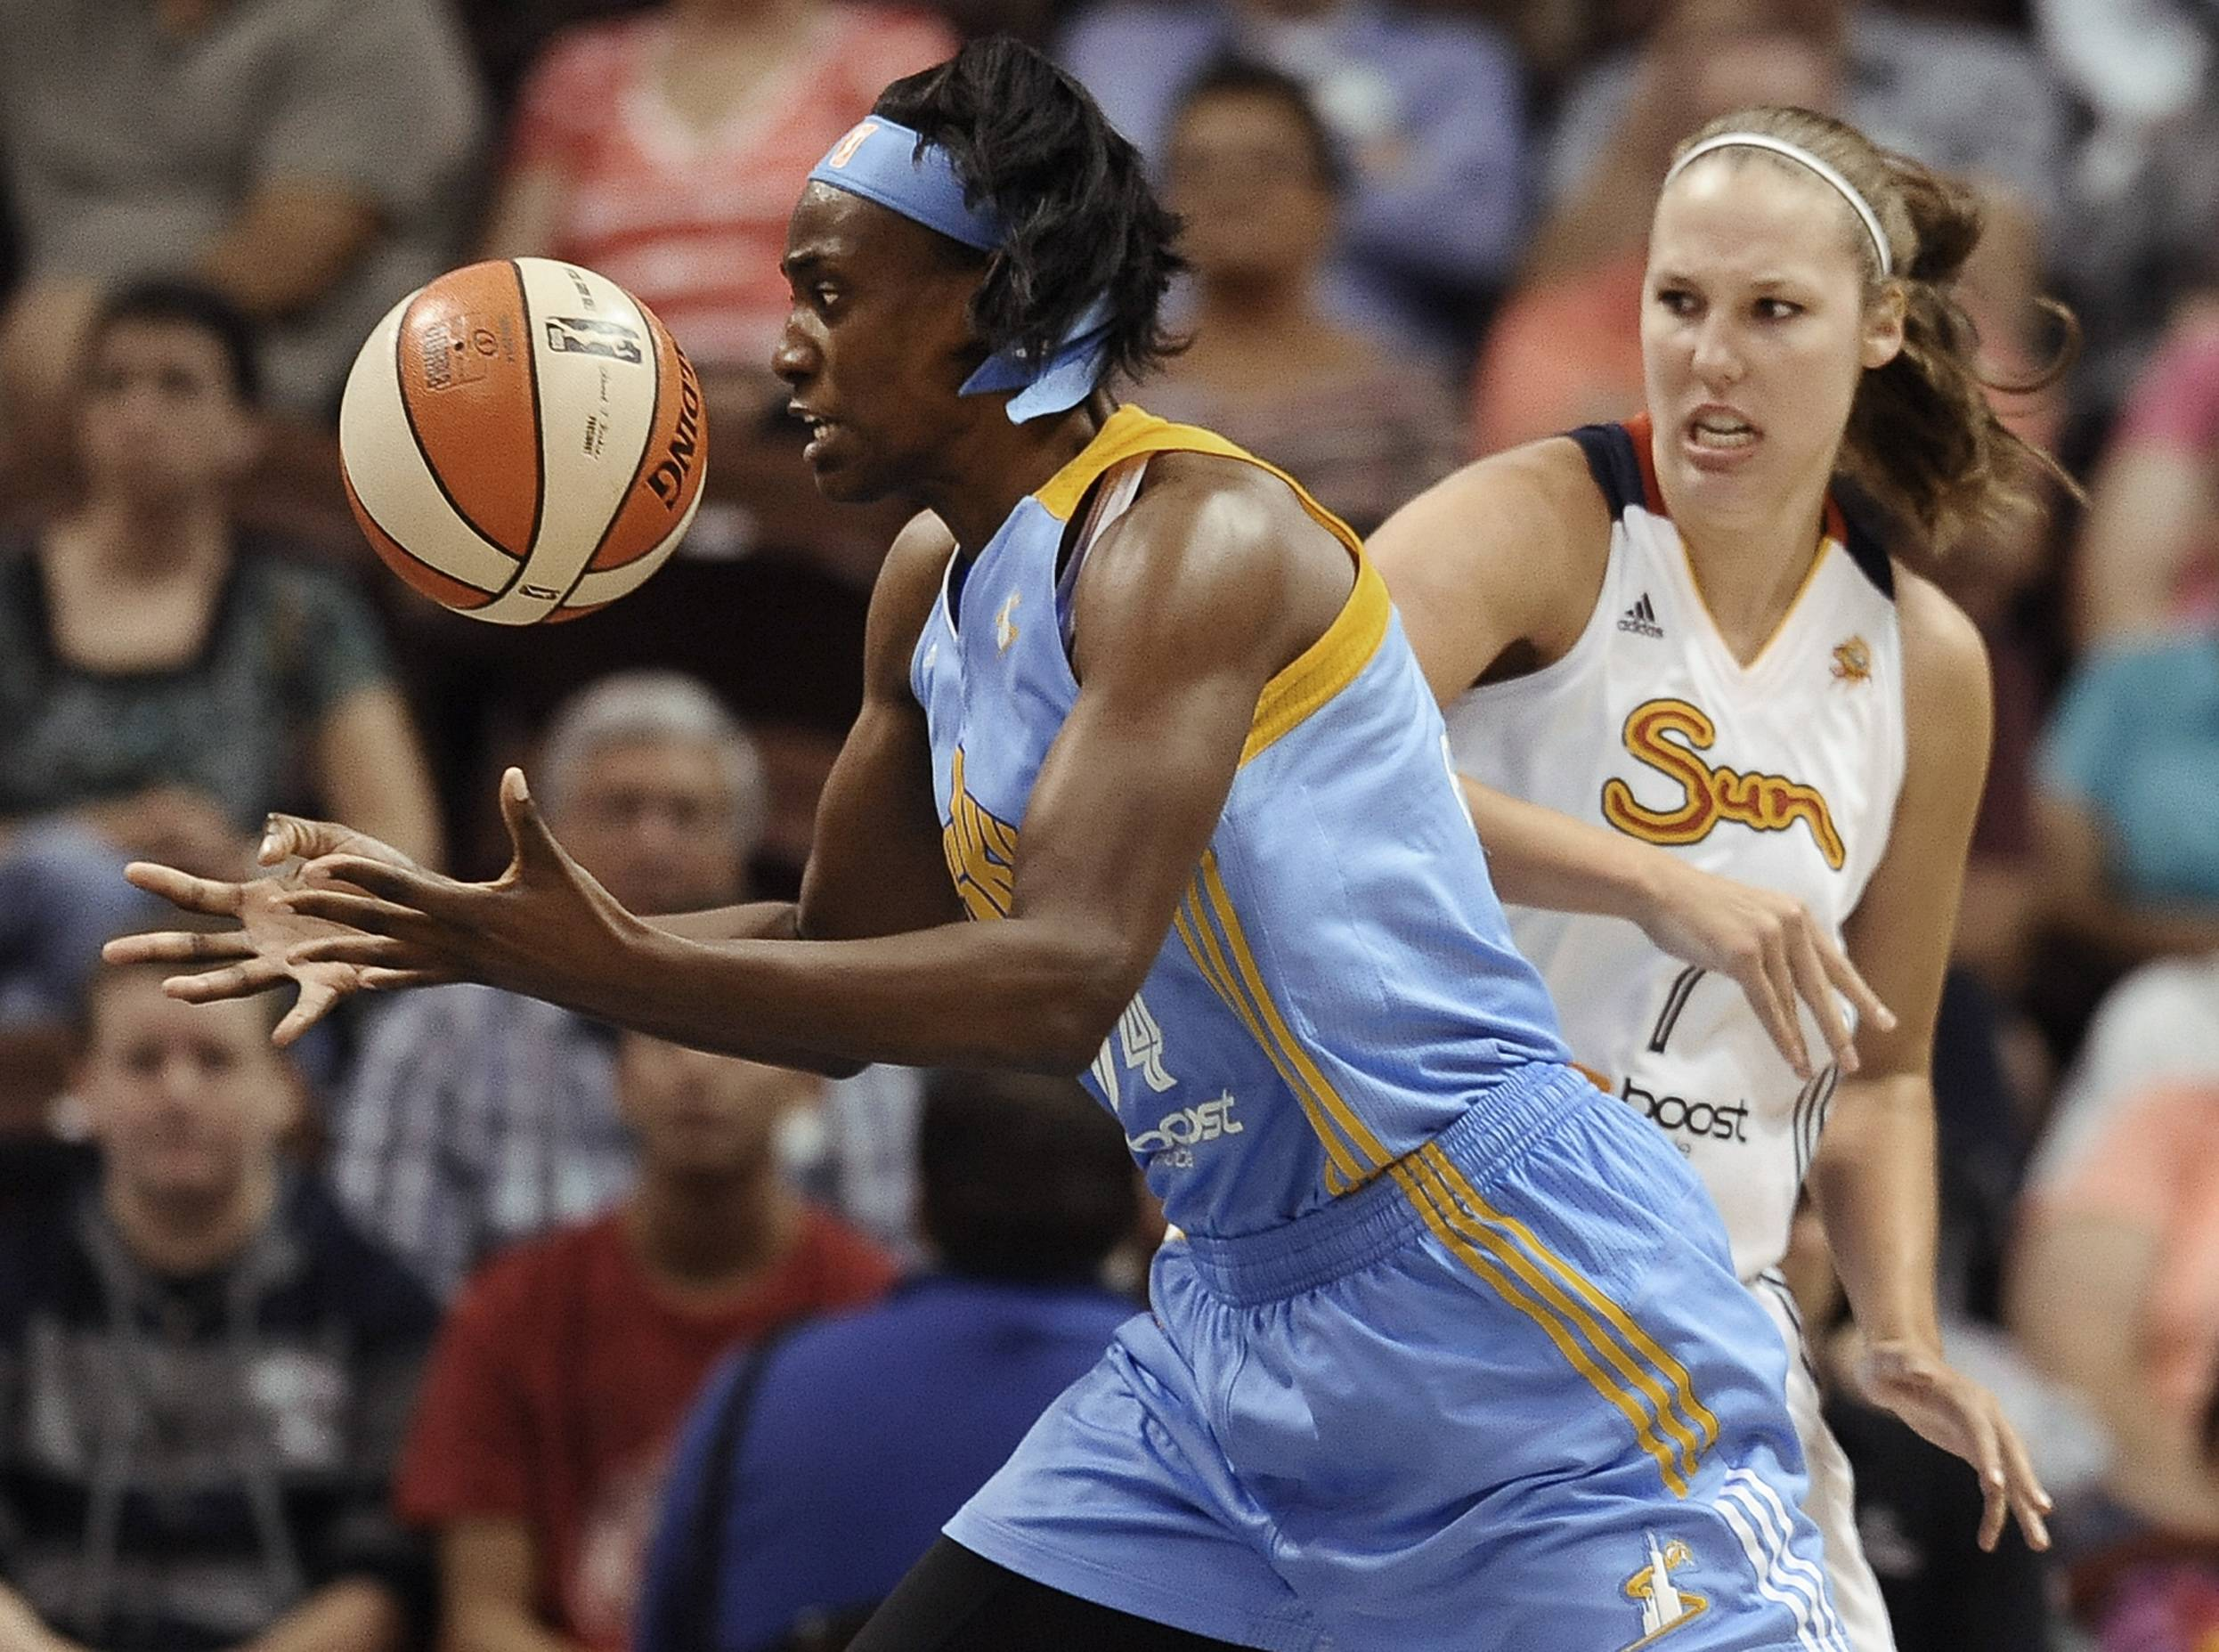 Chicago Sky's Sylvia Fowles, left, reaches for the ball as Connecticut Sun's Kayla Pedersen, right, defends during the first half of a WNBA basketball game, Tuesday, Aug. 5, 2014, in Uncasville, Conn.